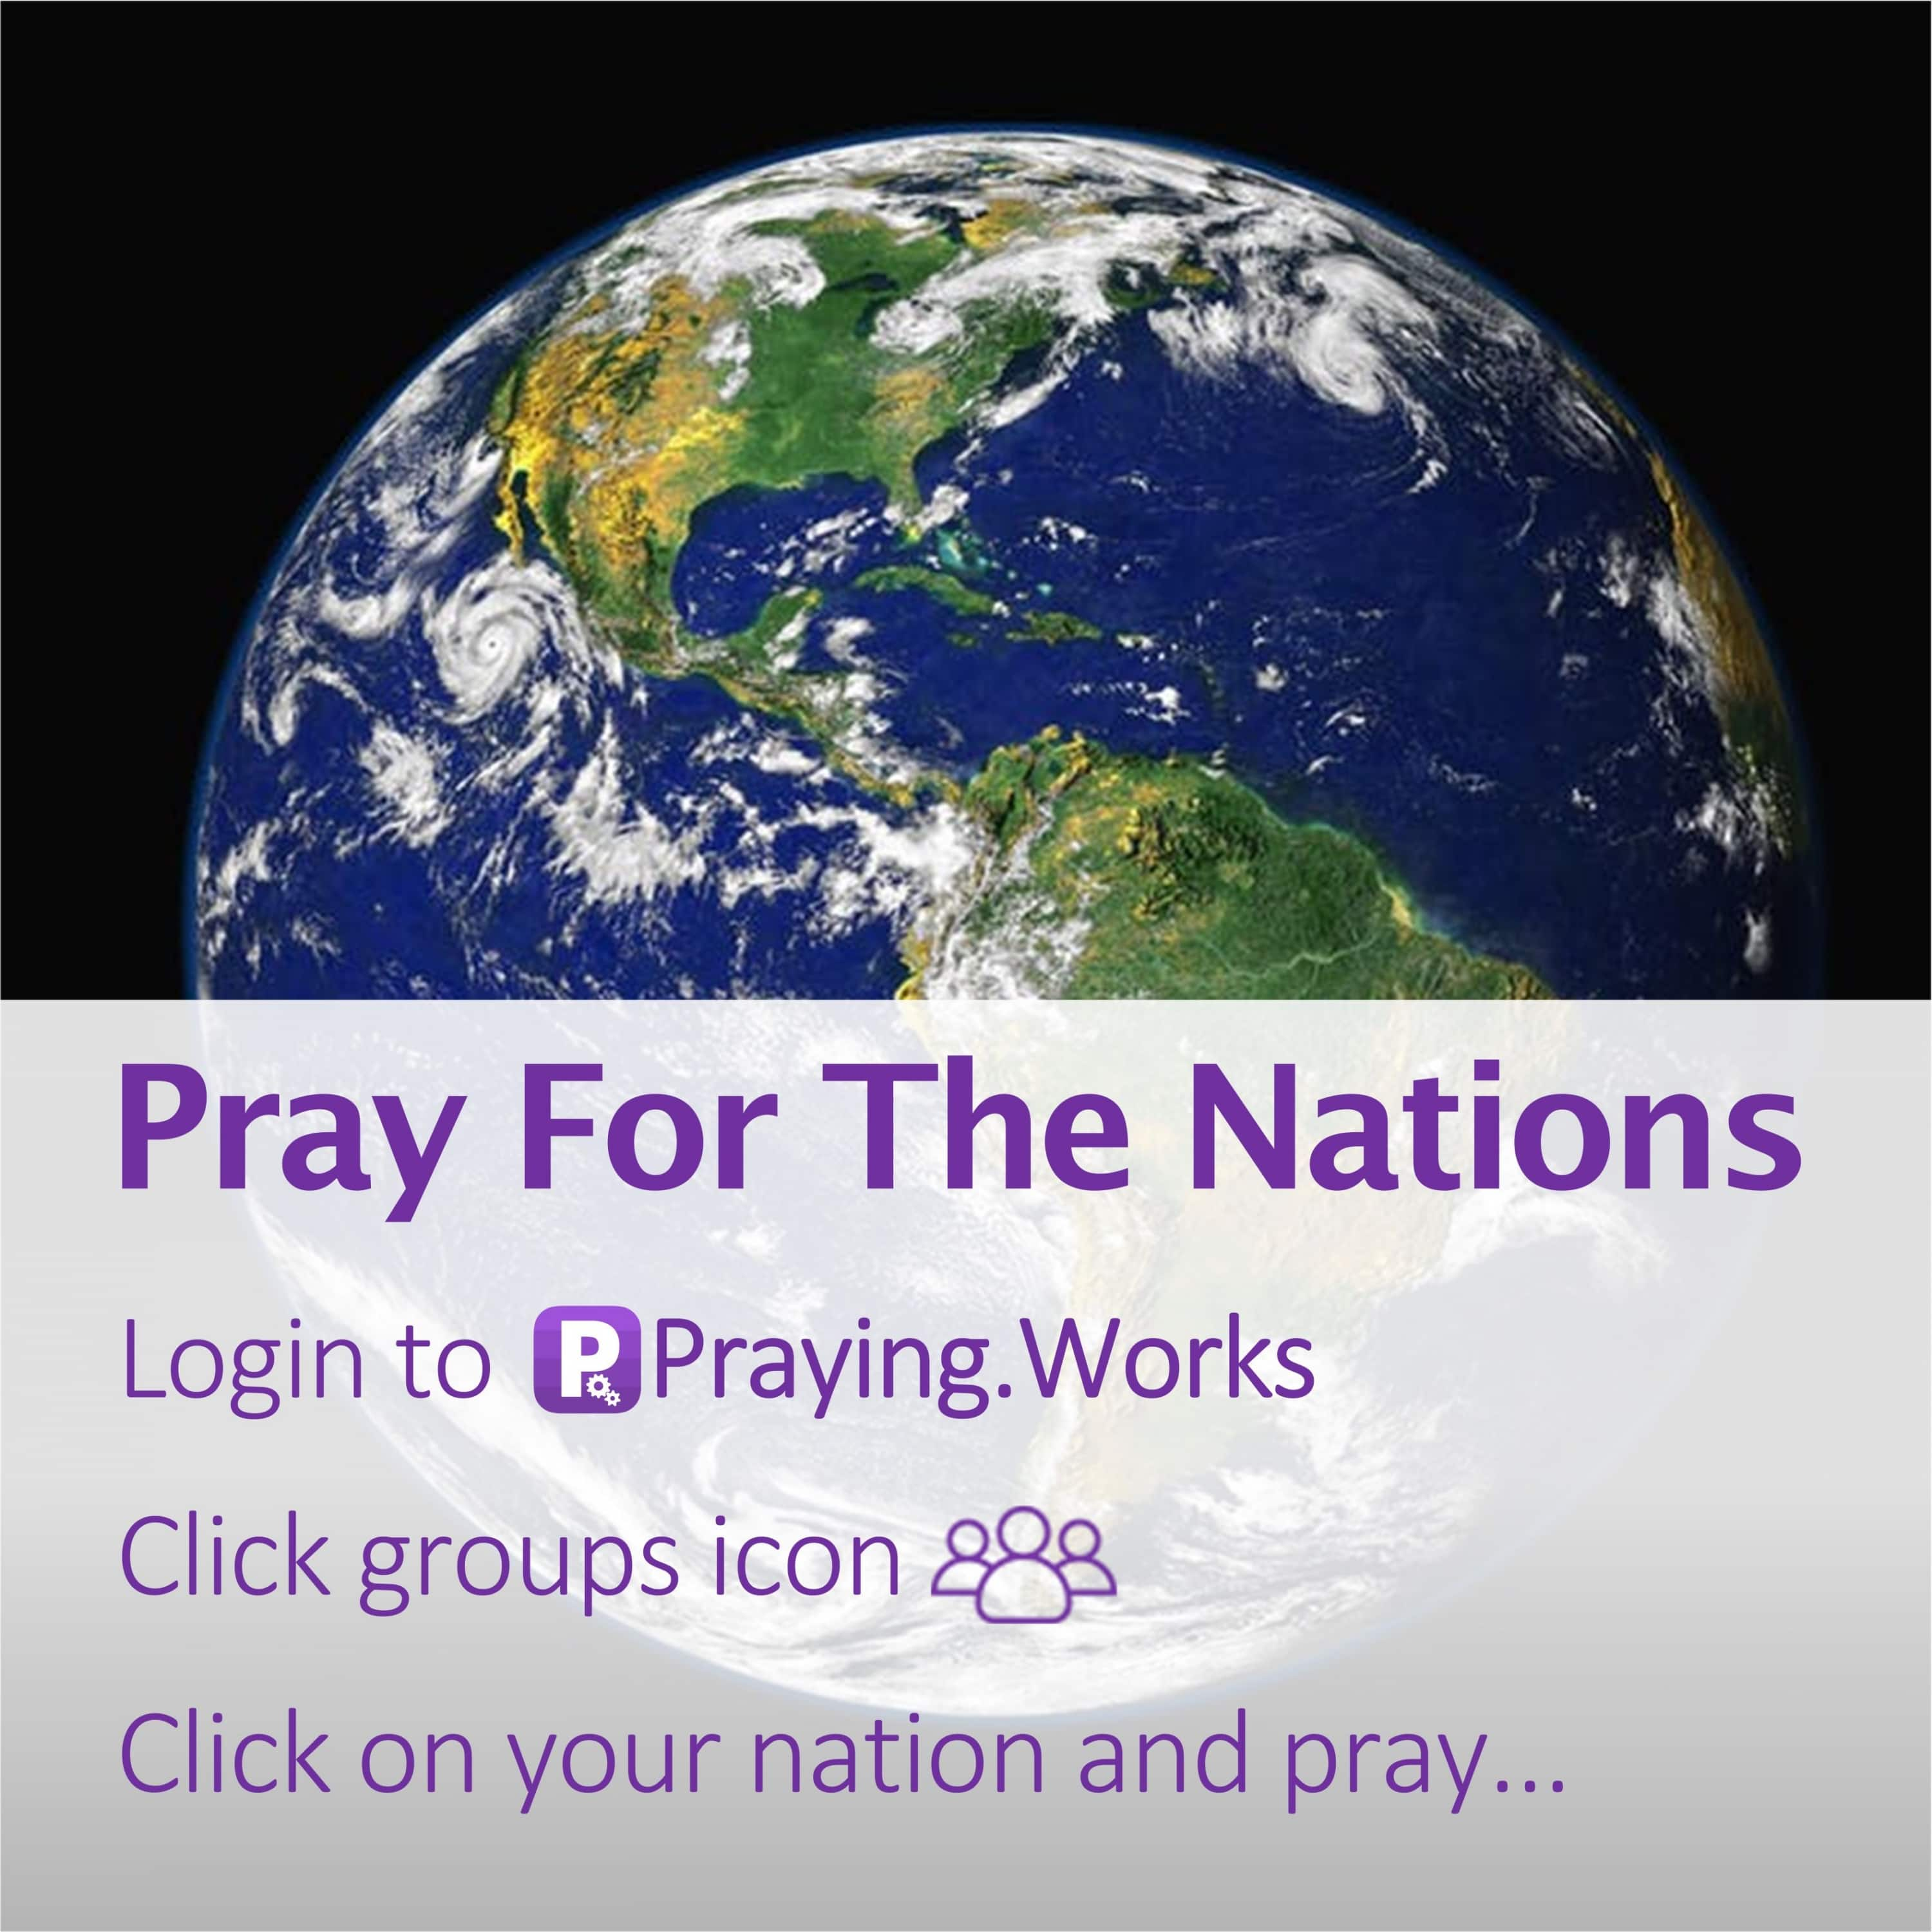 Pray for the Nations 4/7